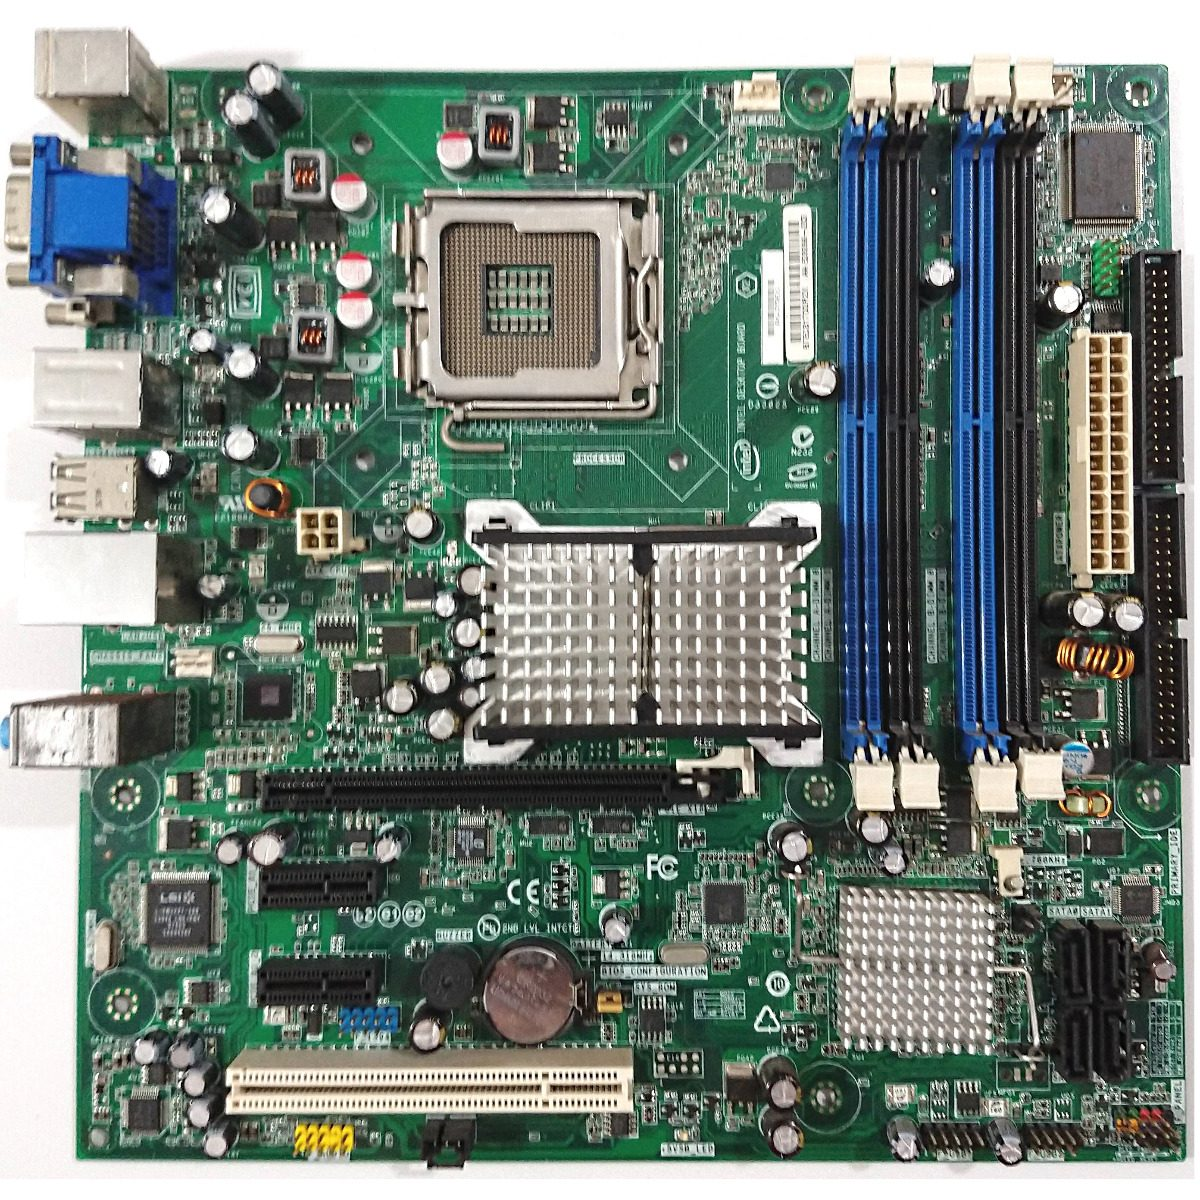 INTEL DG35EC MOTHERBOARD WINDOWS VISTA DRIVER DOWNLOAD